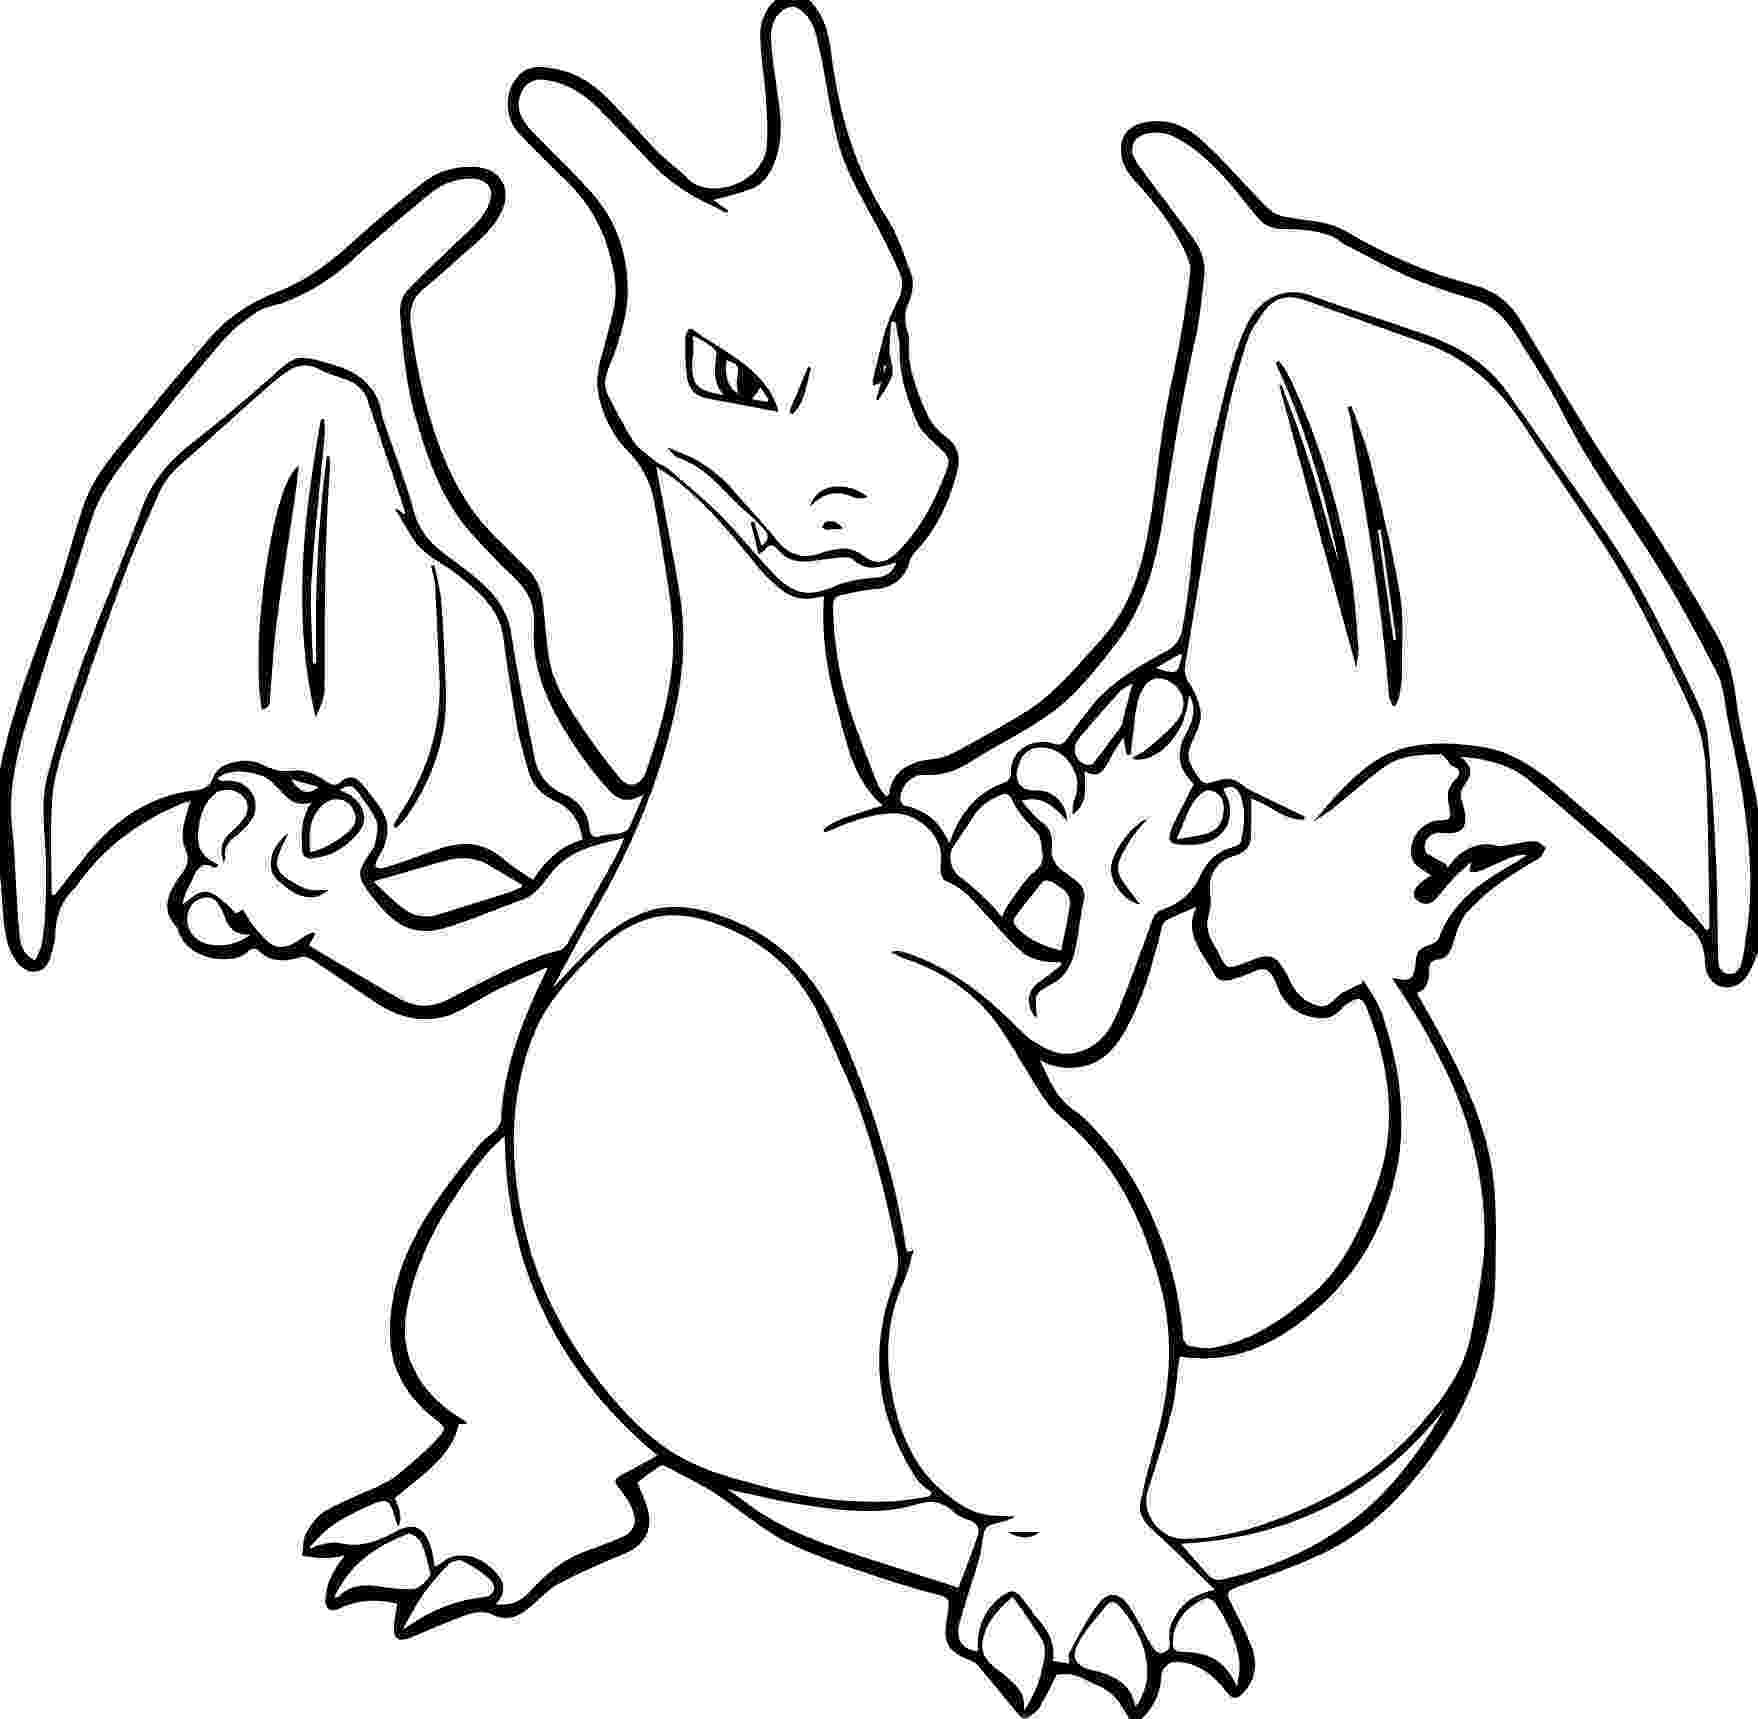 pokemon charizard coloring pages charizard coloring pages to download and print for free charizard pokemon pages coloring